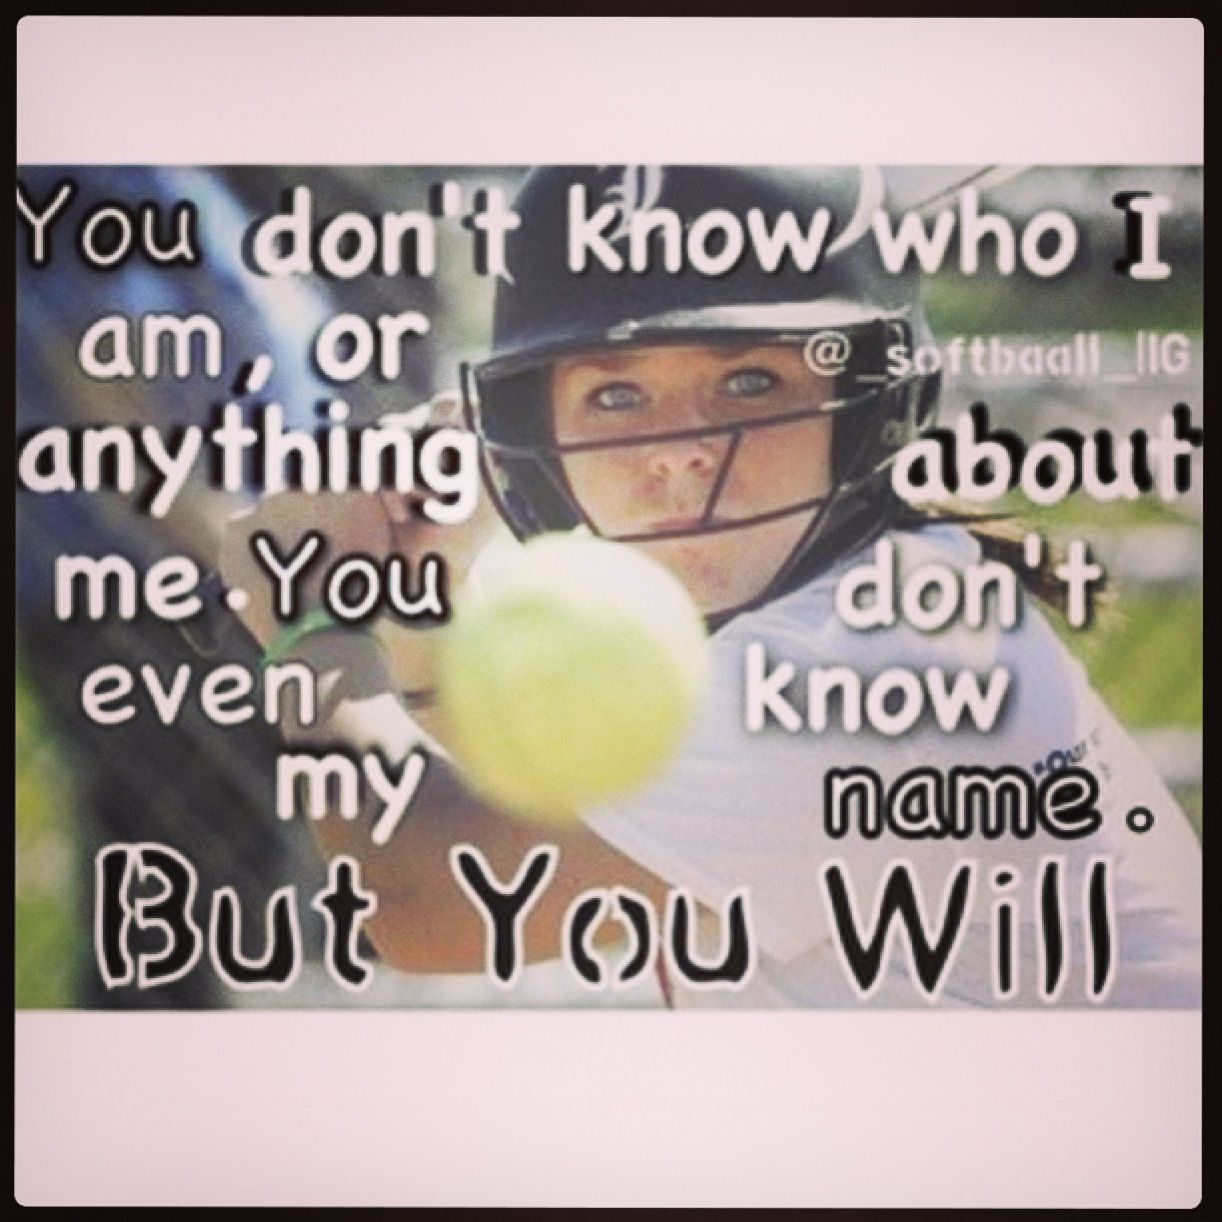 softball sayings kids clothing accessories cafepress